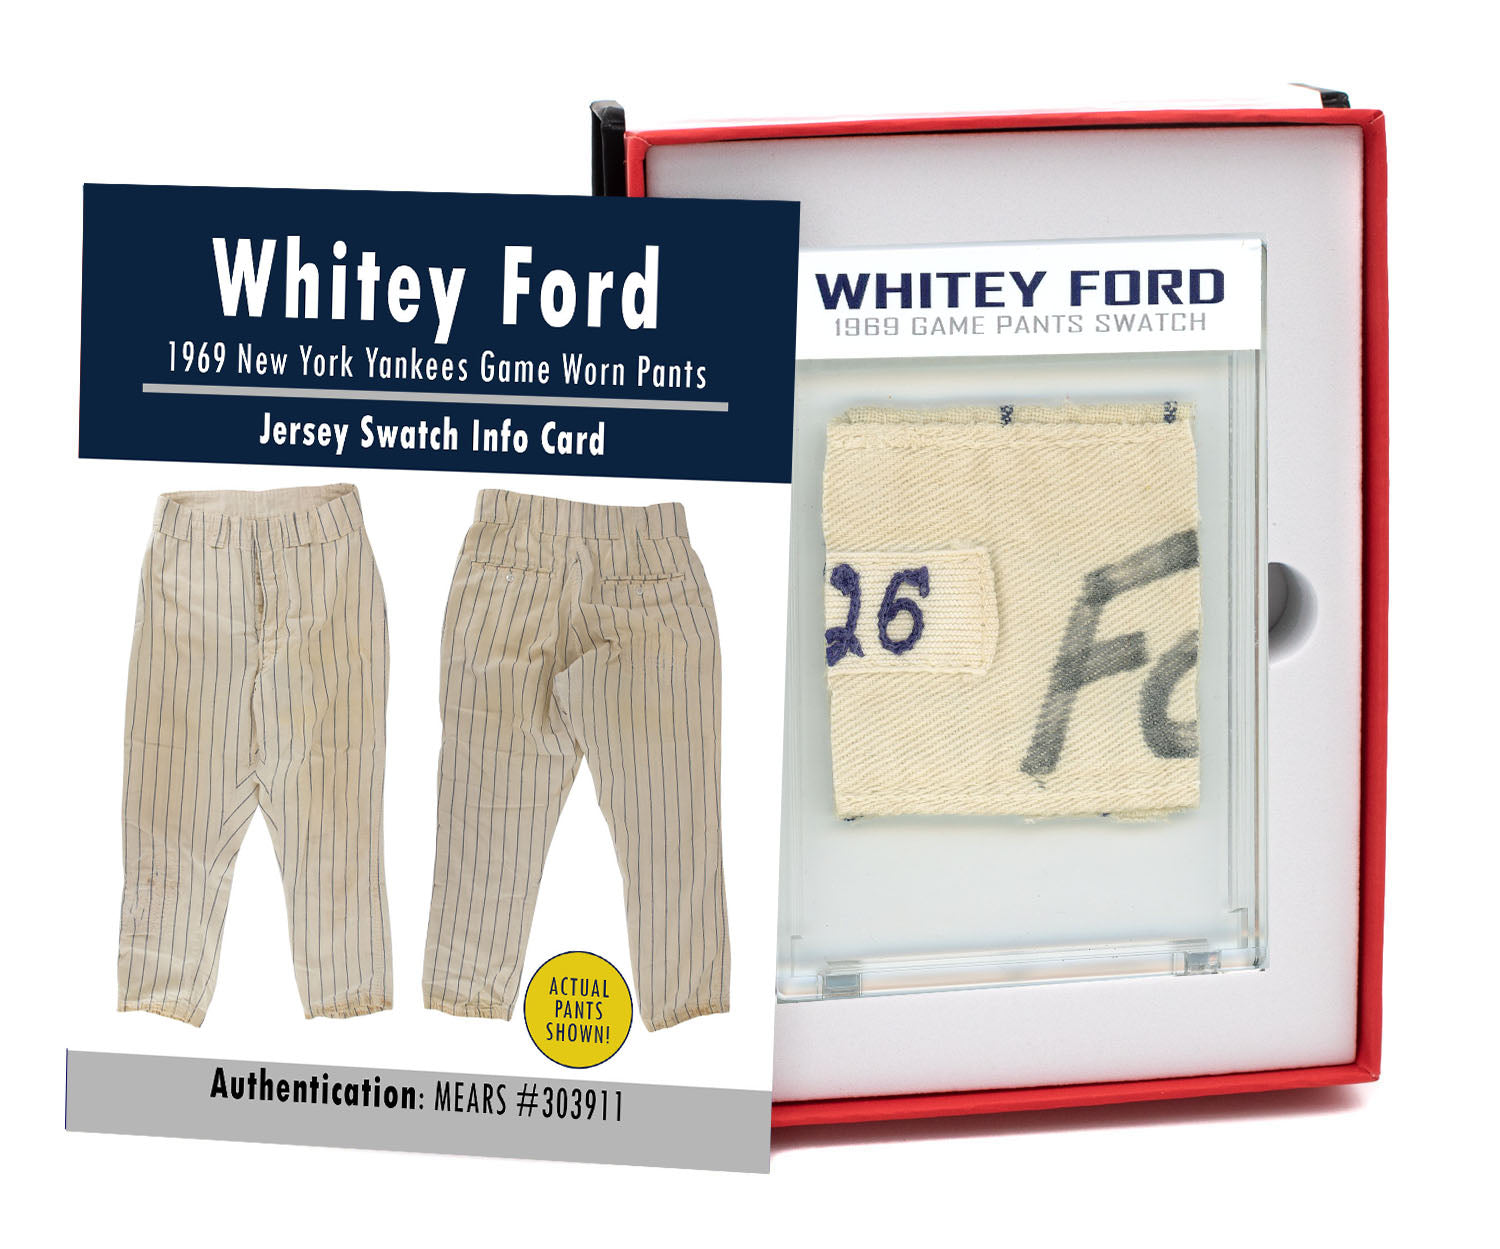 WHITEY FORD 1969 NY YANKEES GAME WORN PANTS MYSTERY SWATCH BOX!